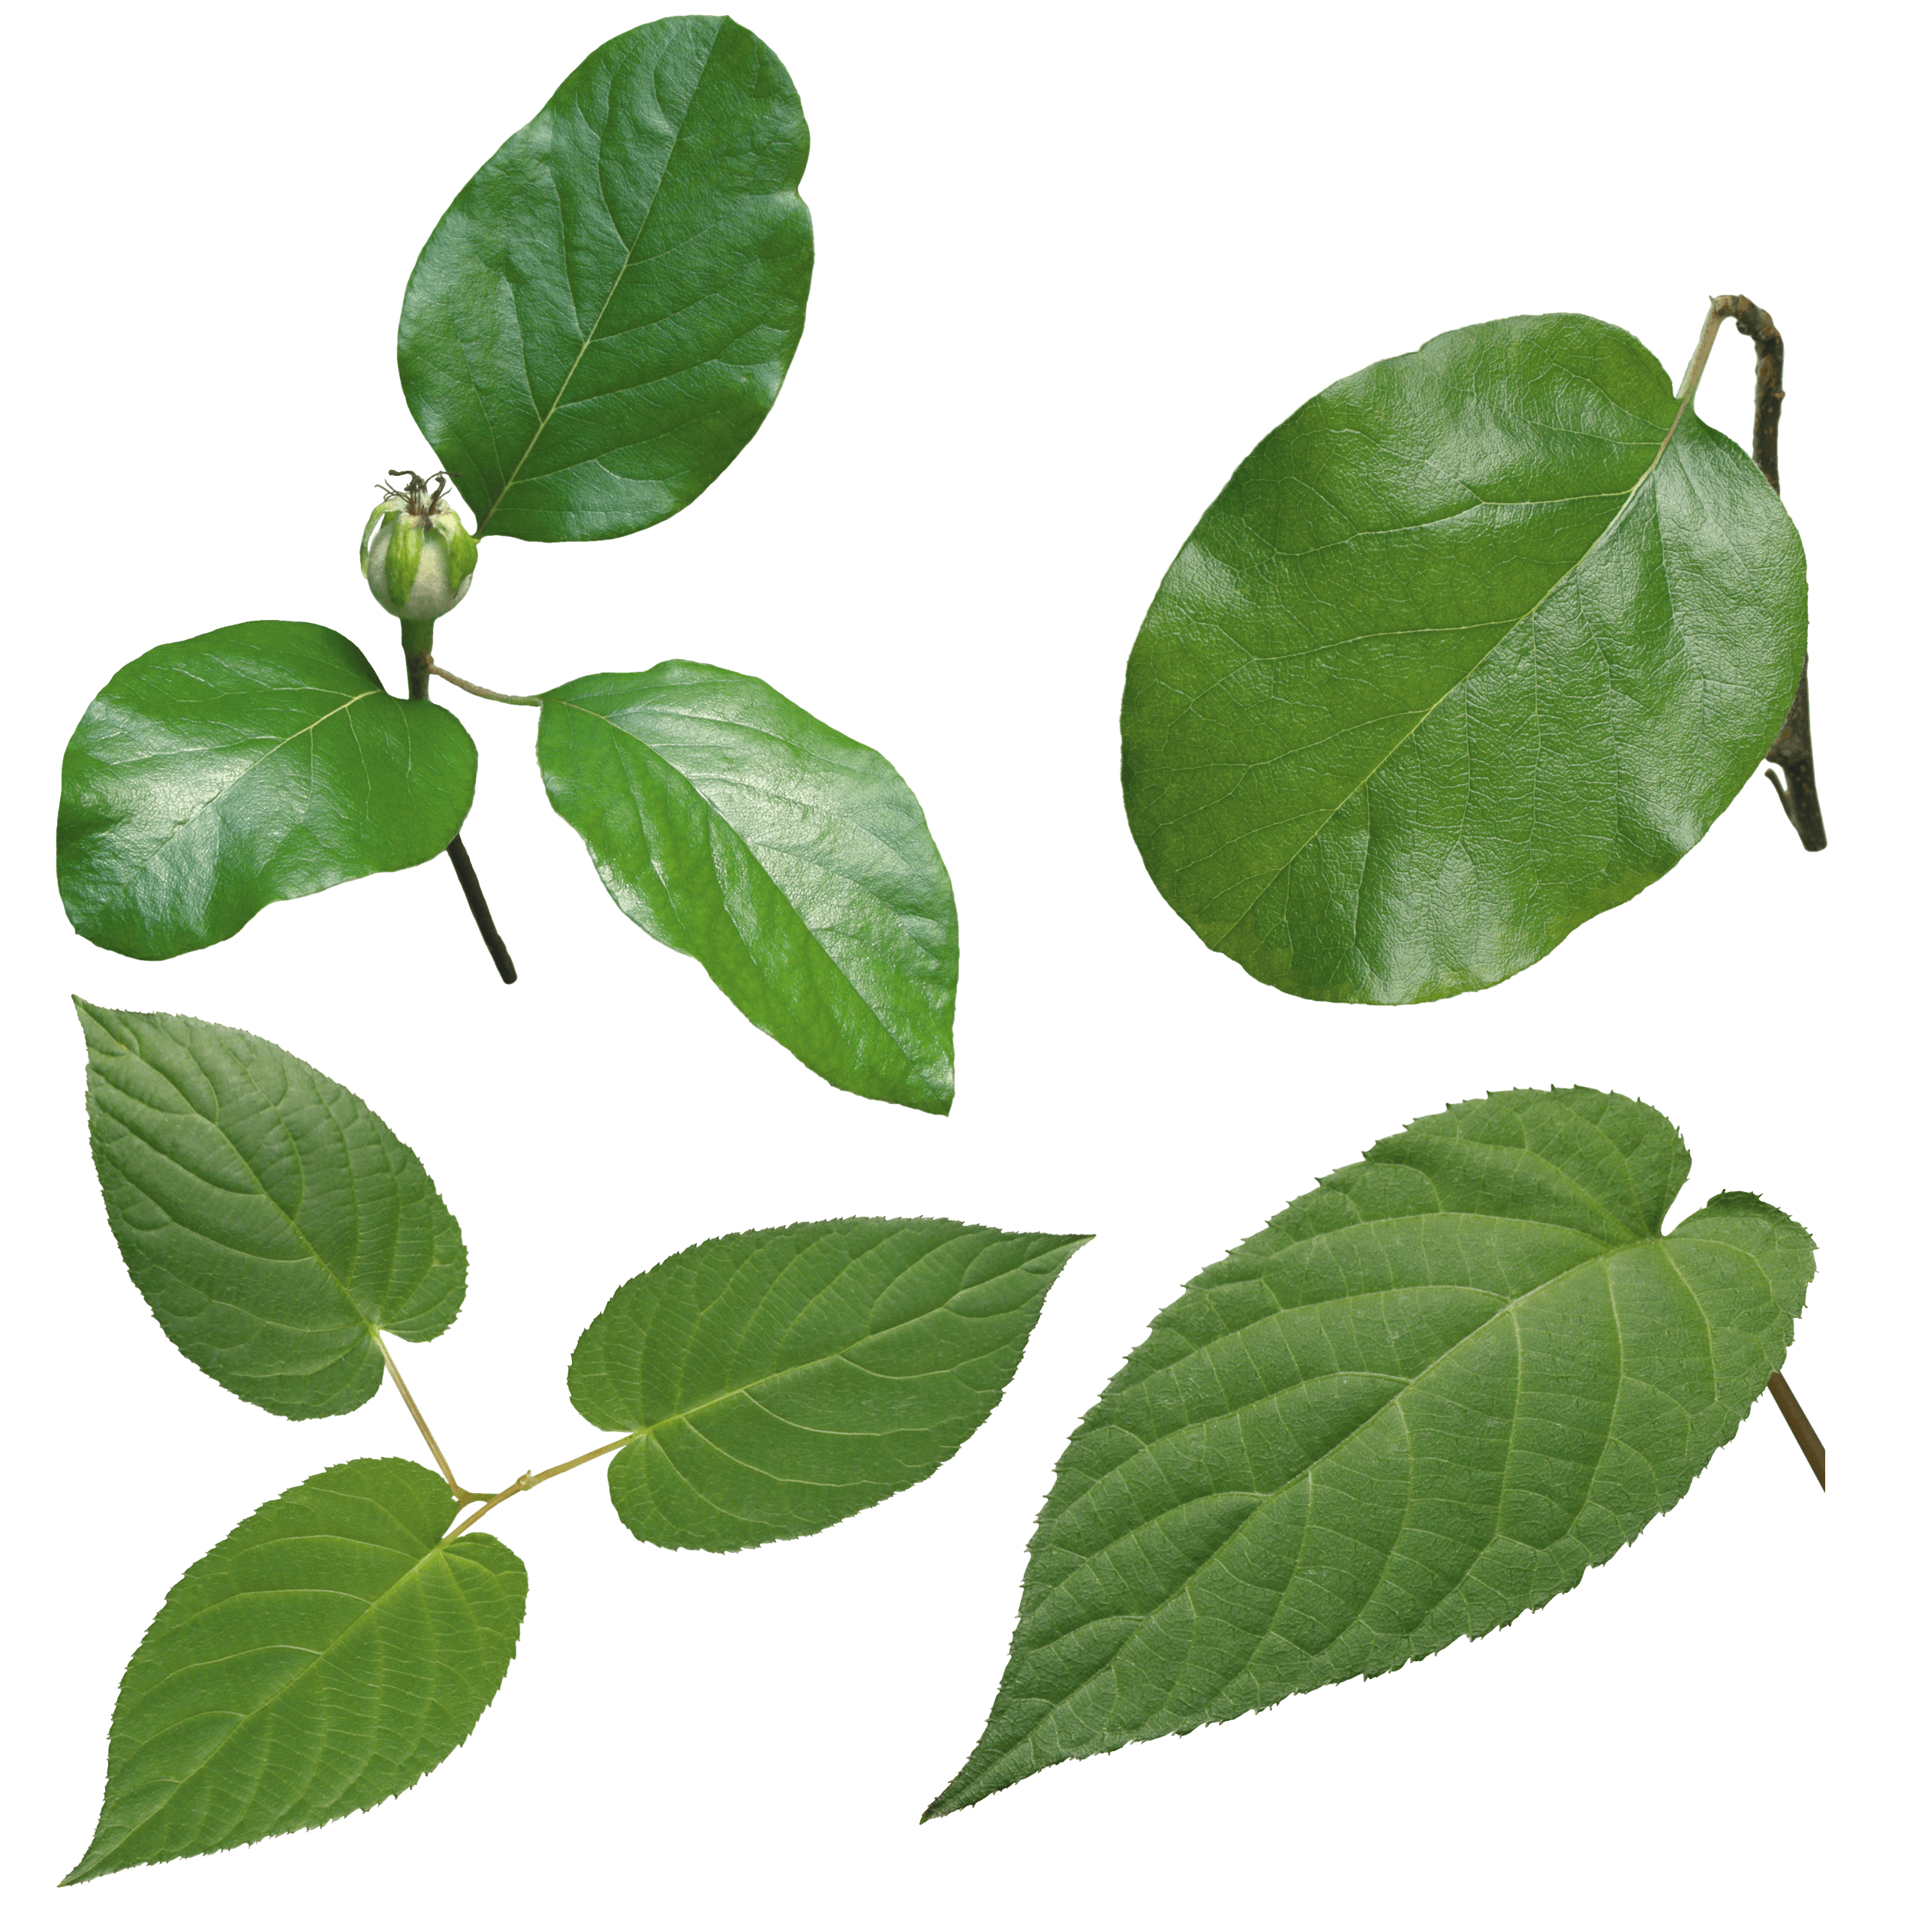 Leaves in the wind png. Images transparent free download